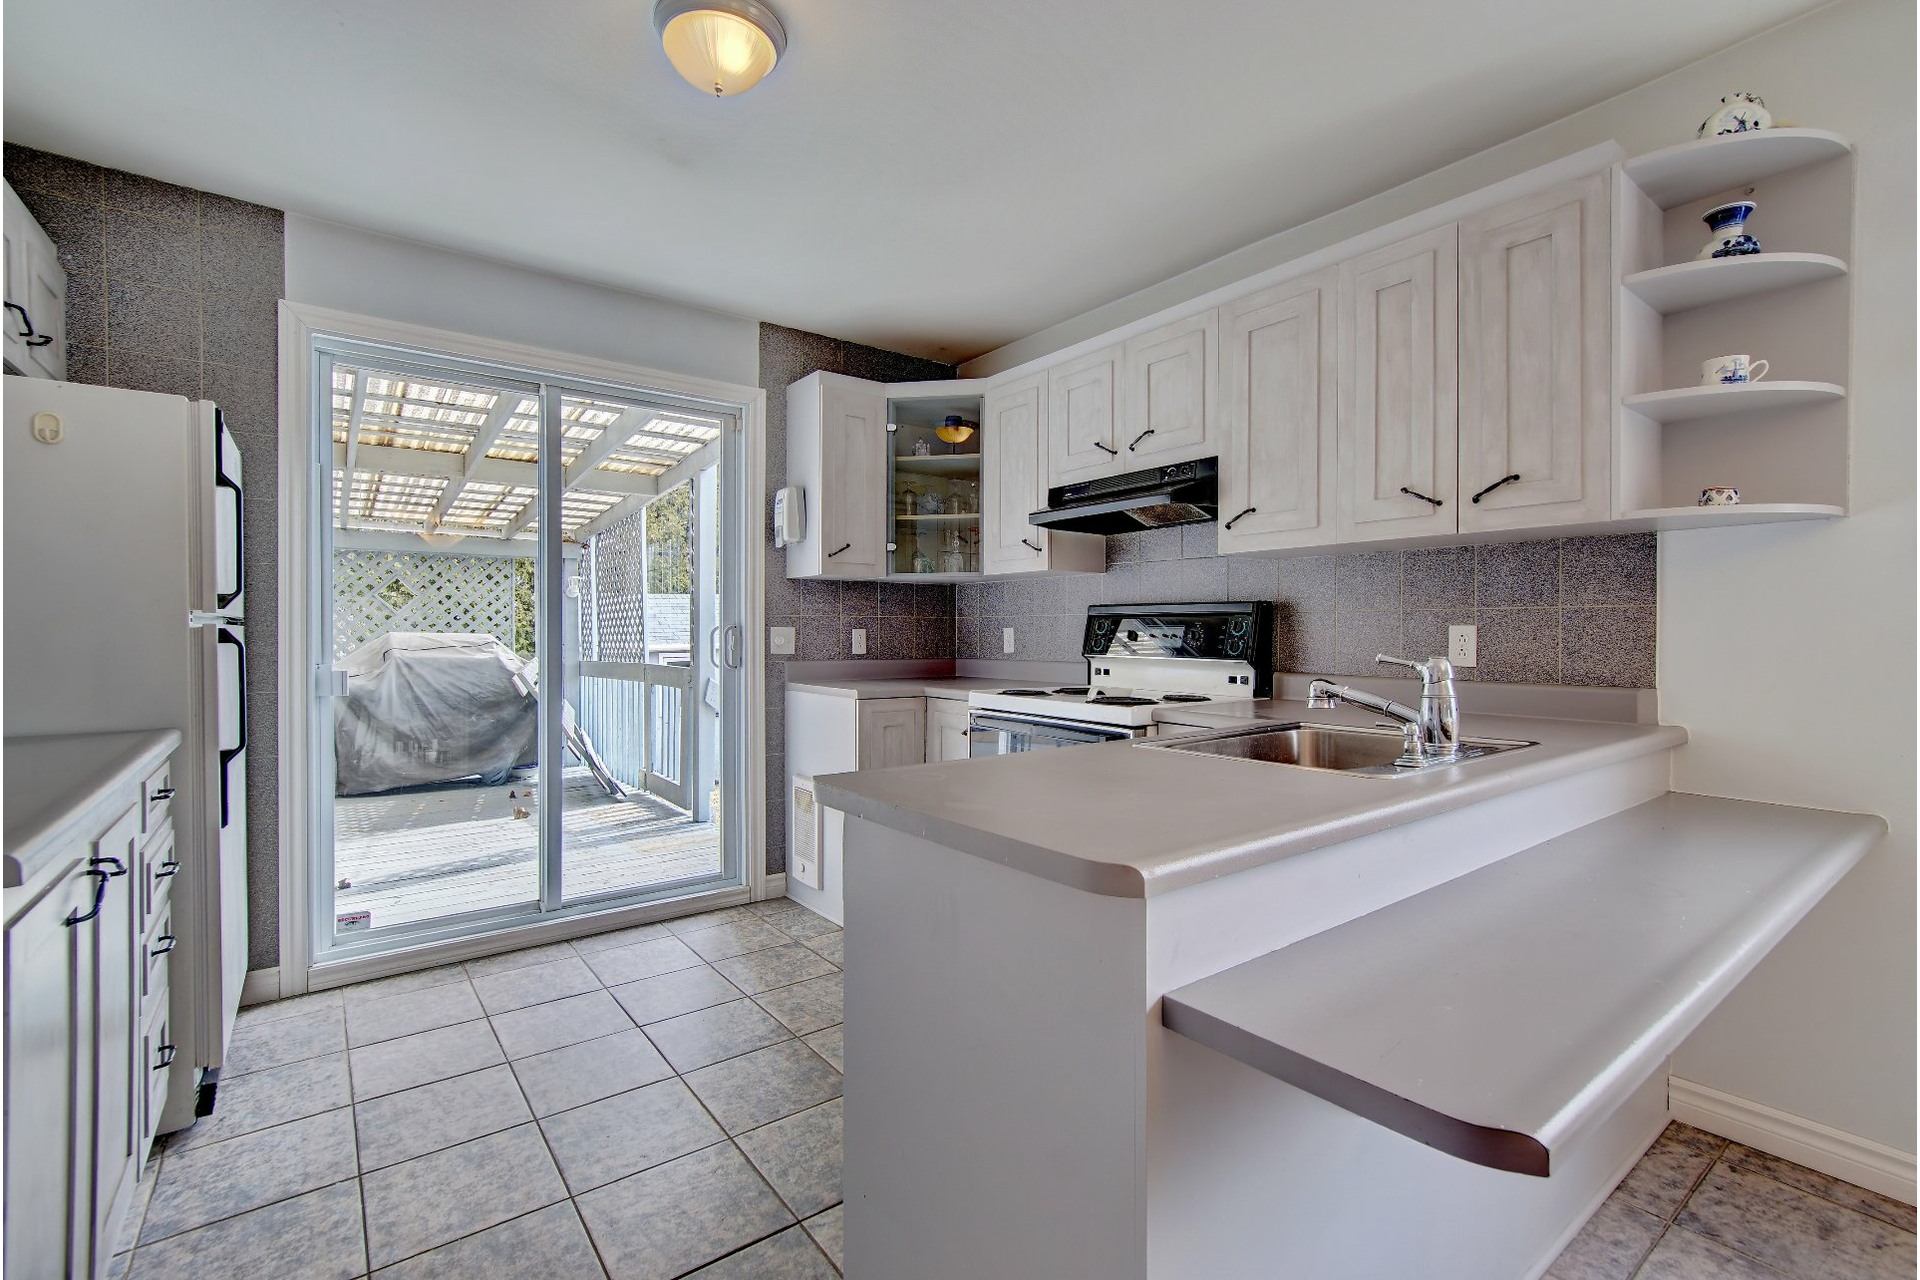 image 10 - House For sale Vaudreuil-Dorion - 11 rooms